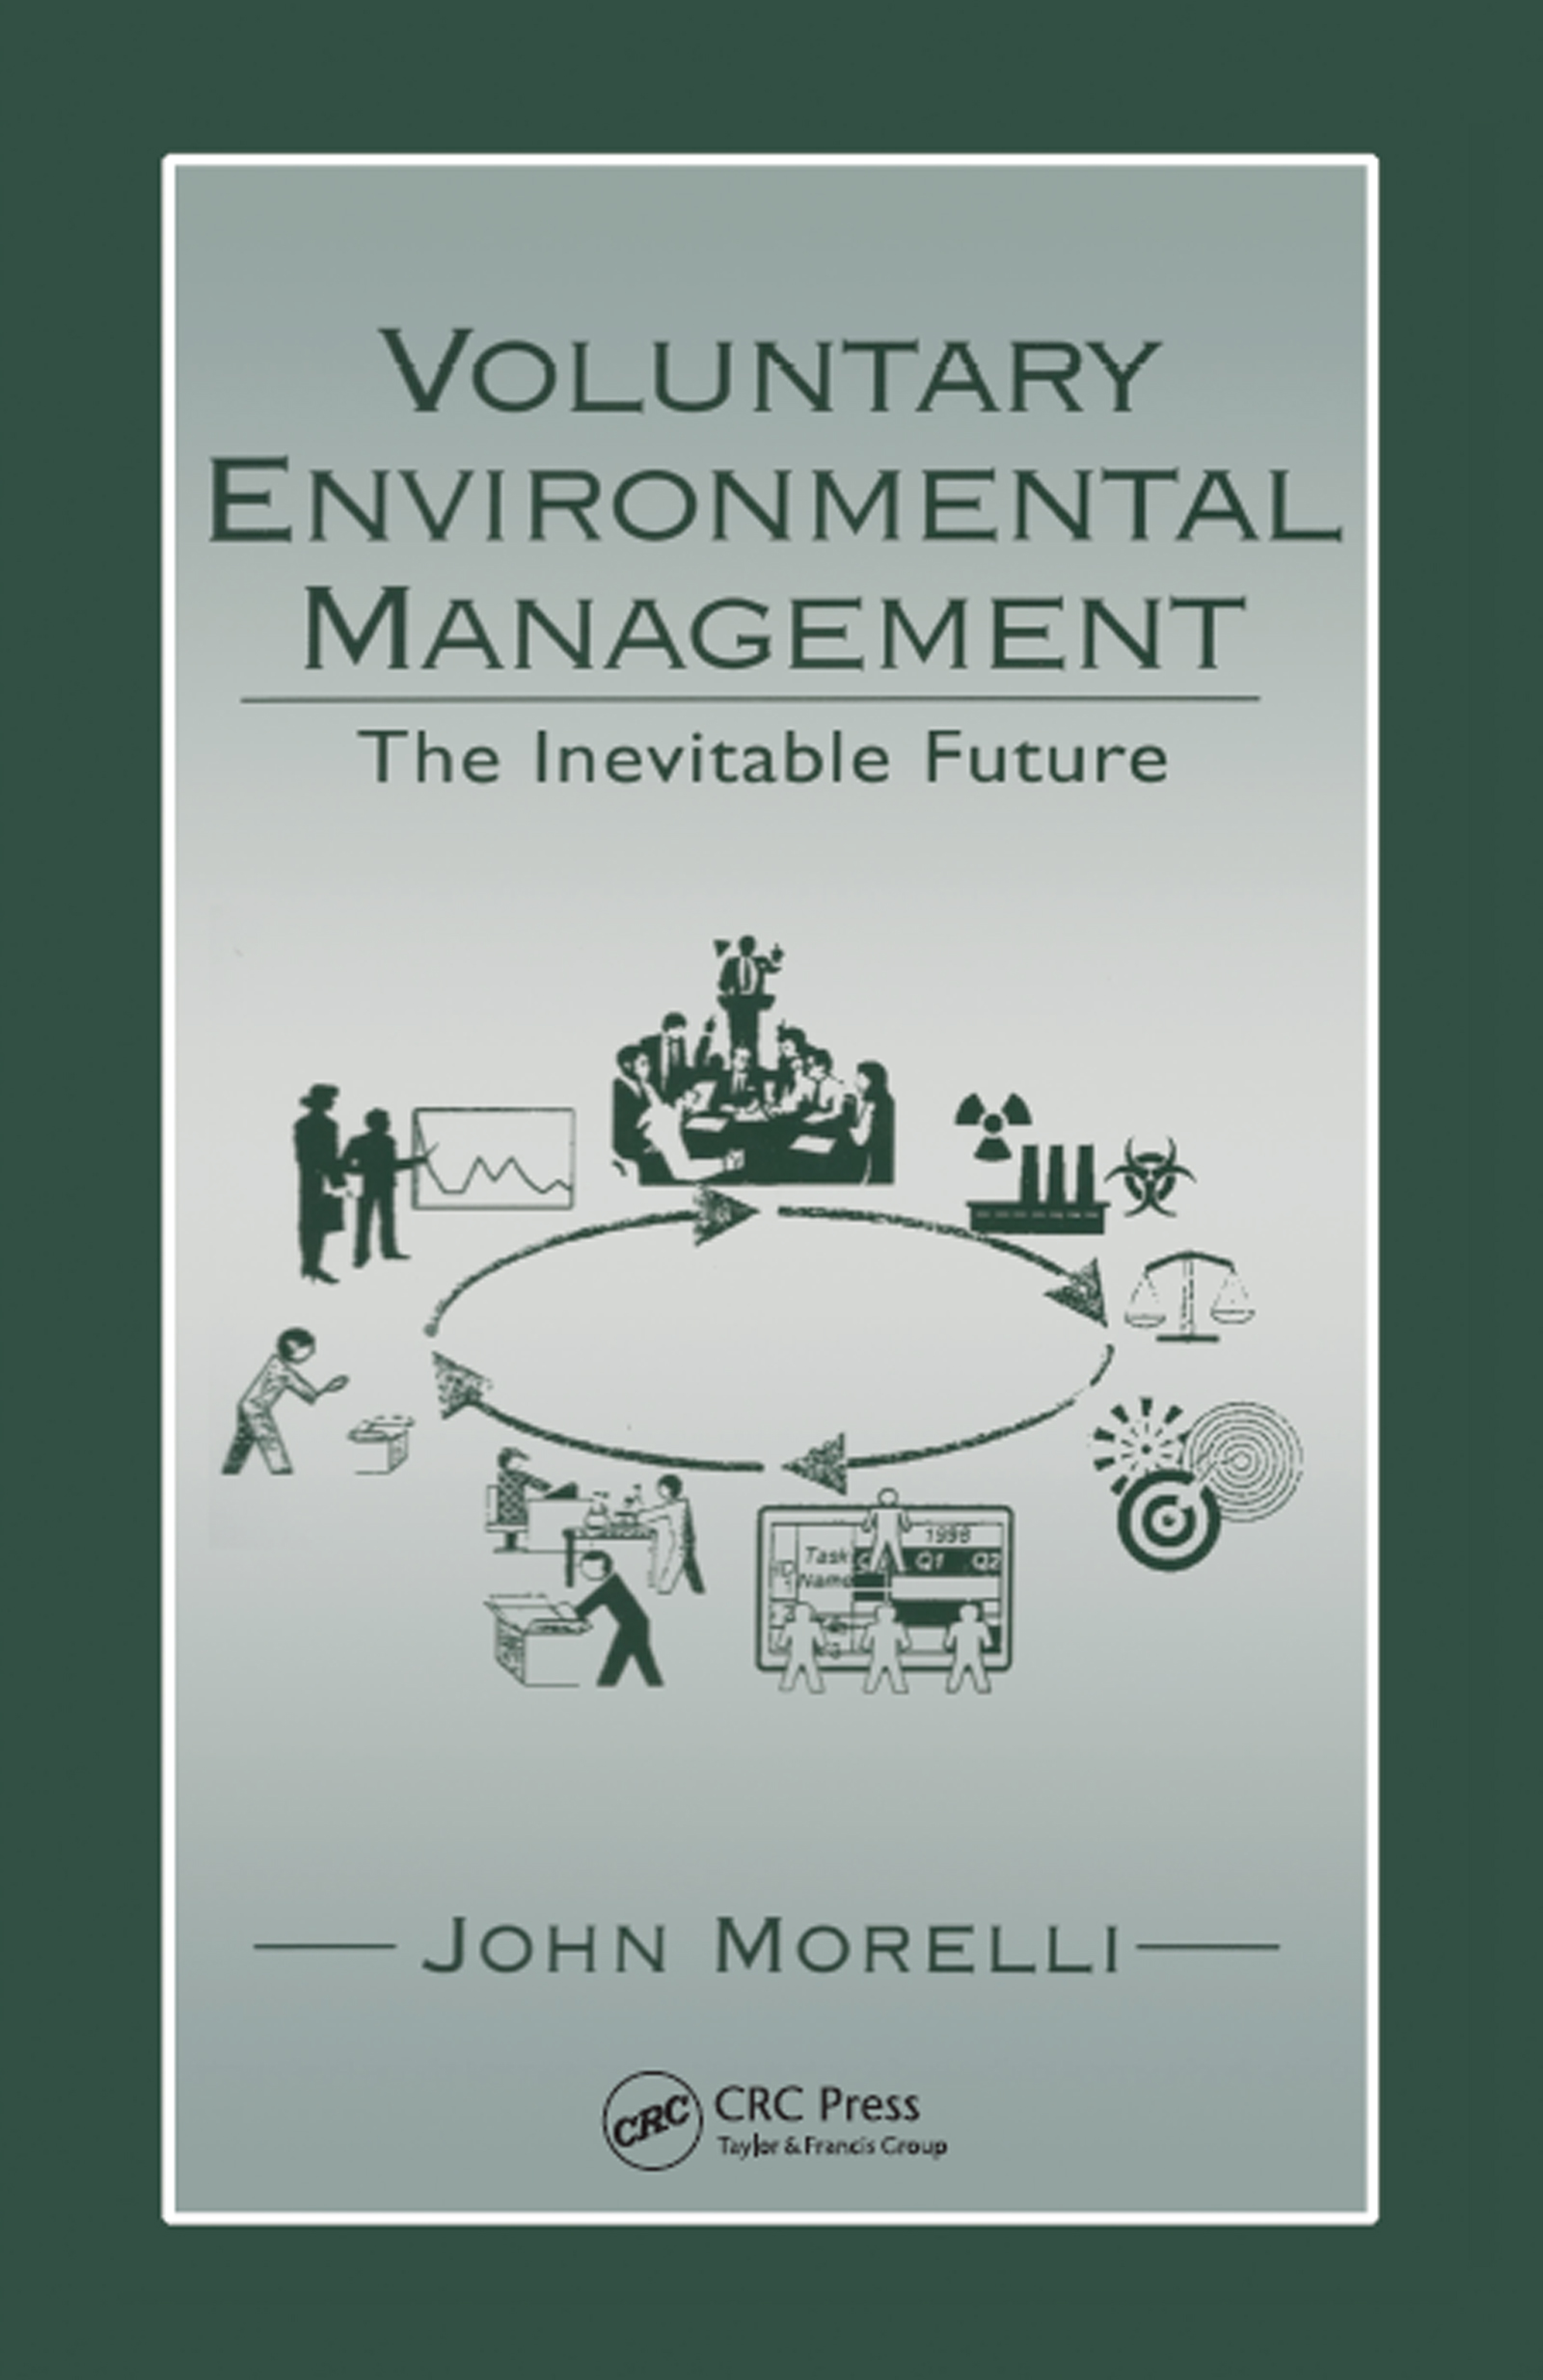 The History and Evolution of Environmental Management in the U.S.